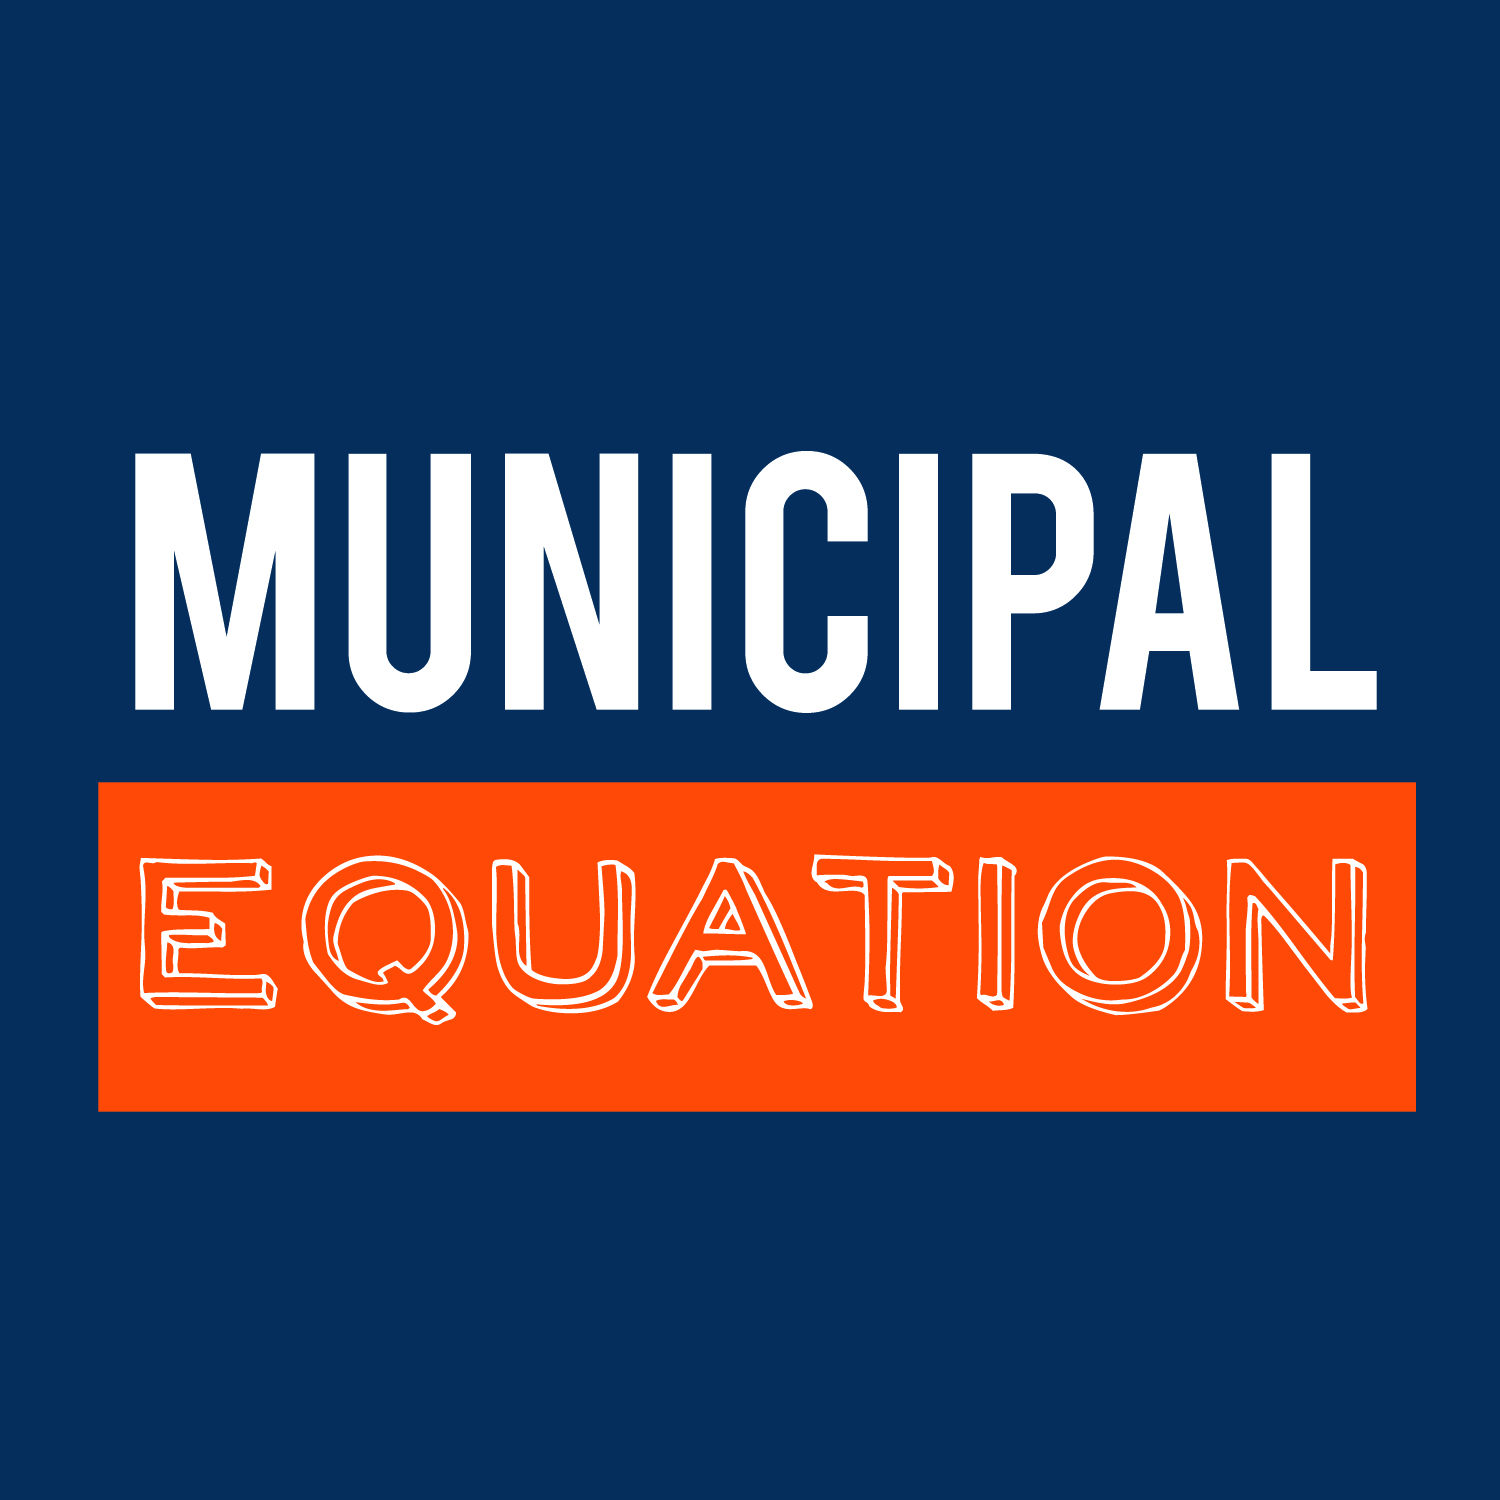 Municipal Equation Logo.jpg